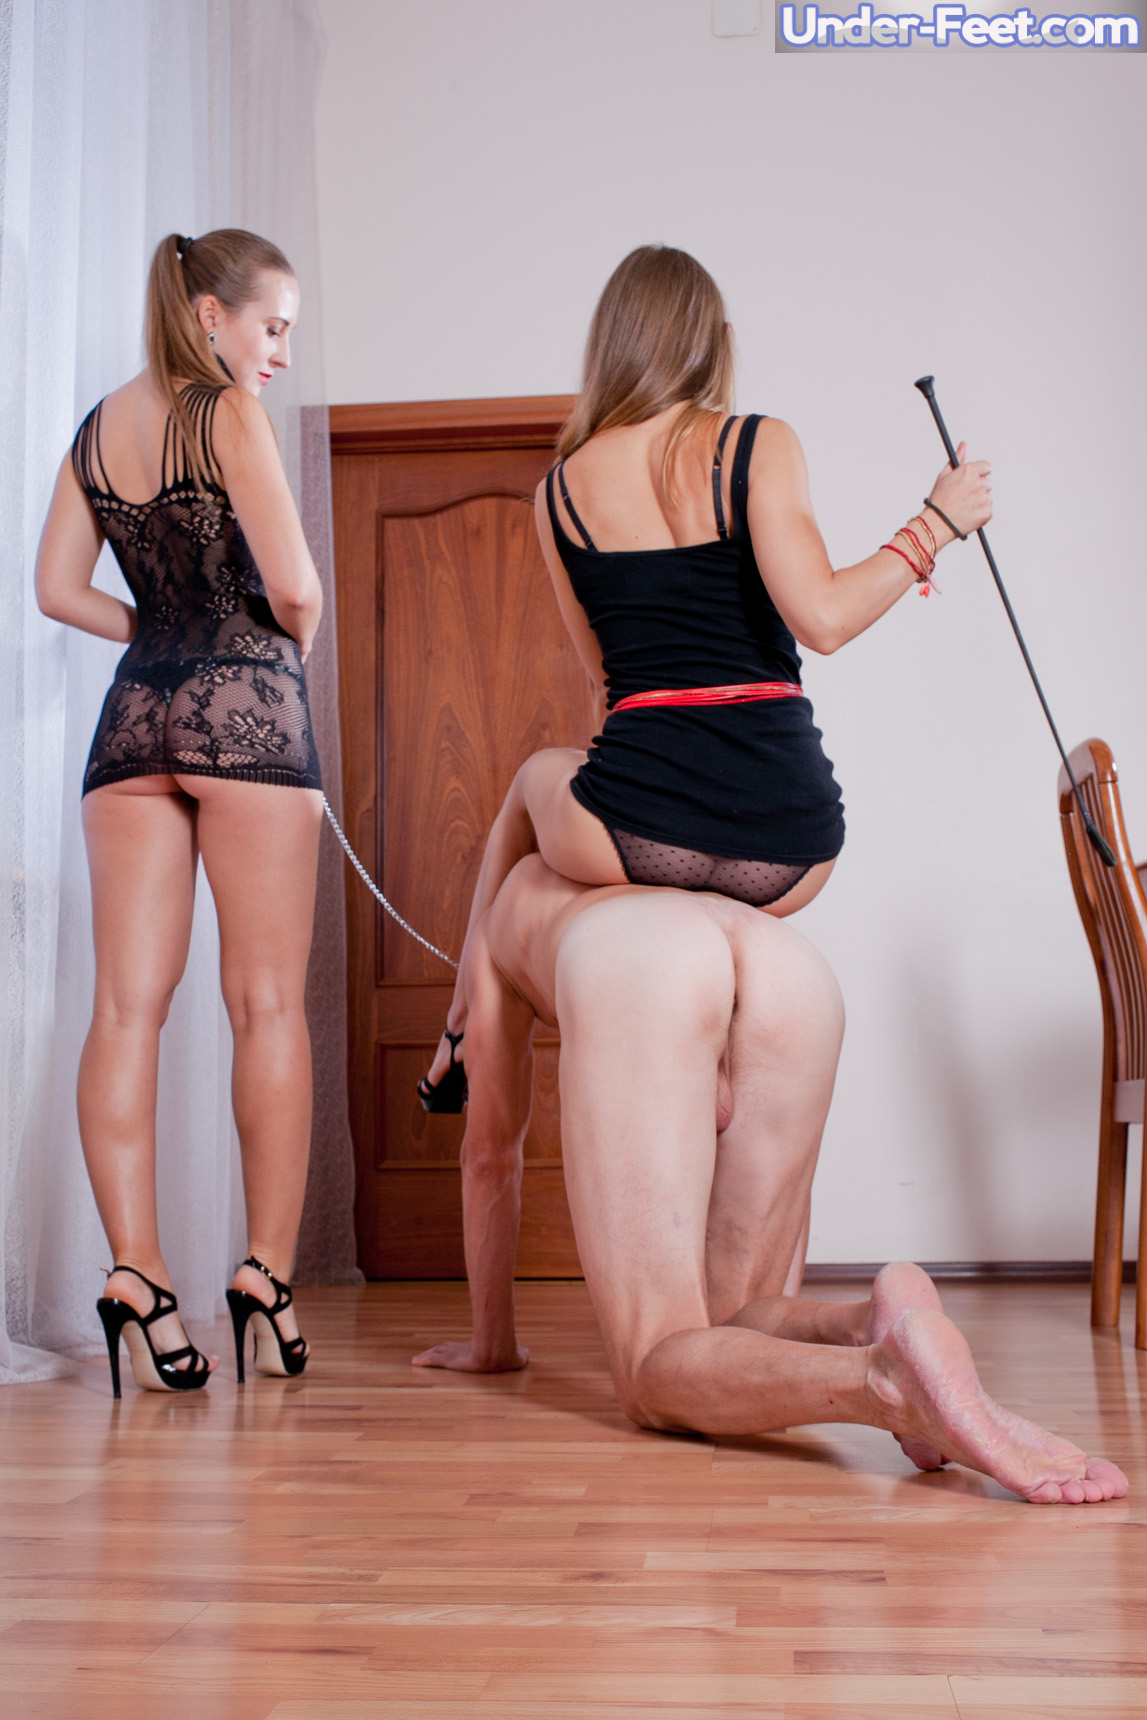 Worship our feet or lose your job 1